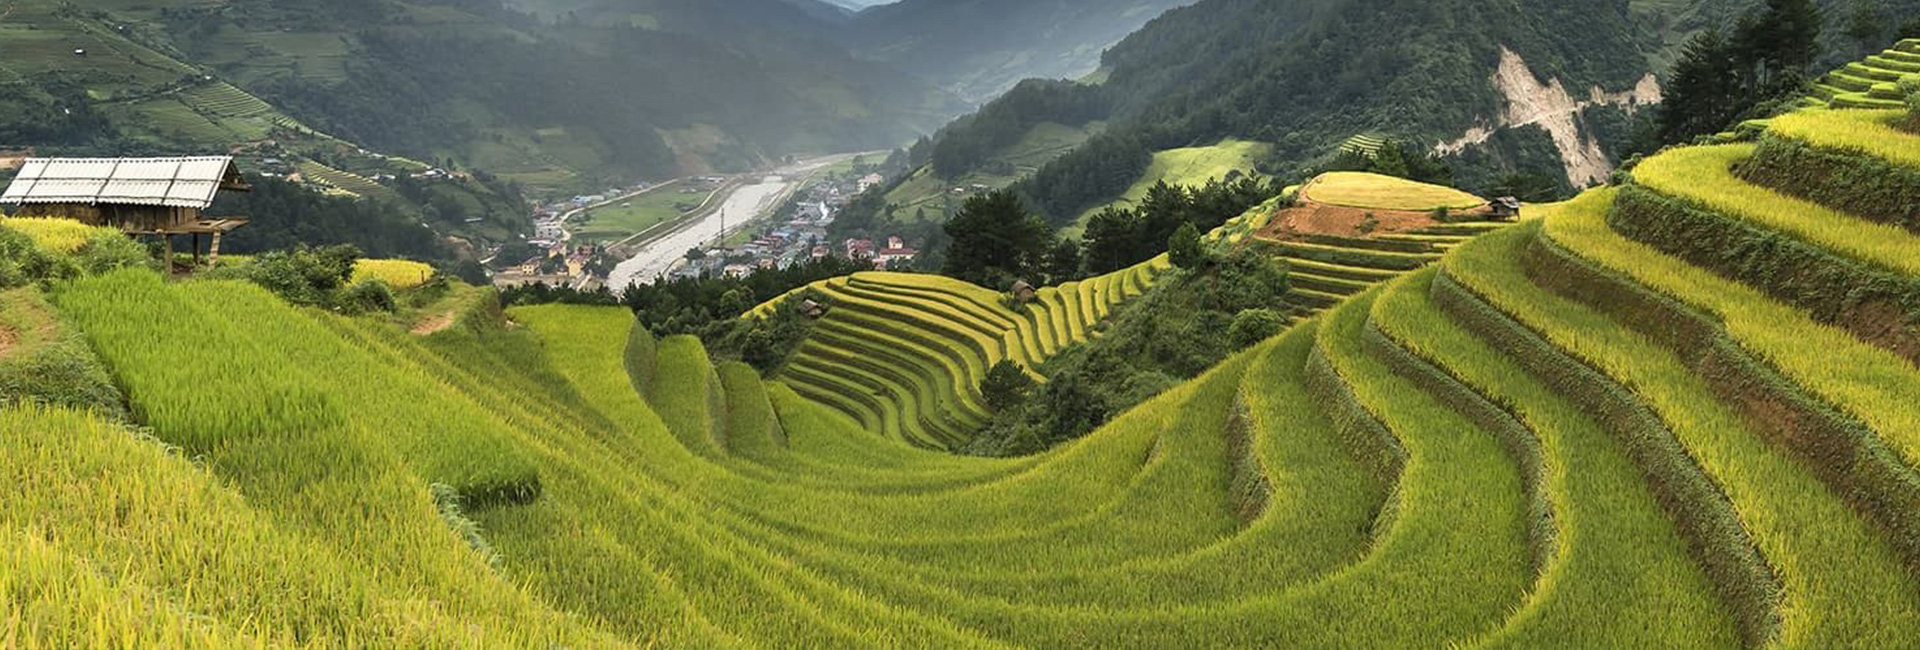 Mai Chau accommodation – Top 5 recommended resorts and homestays